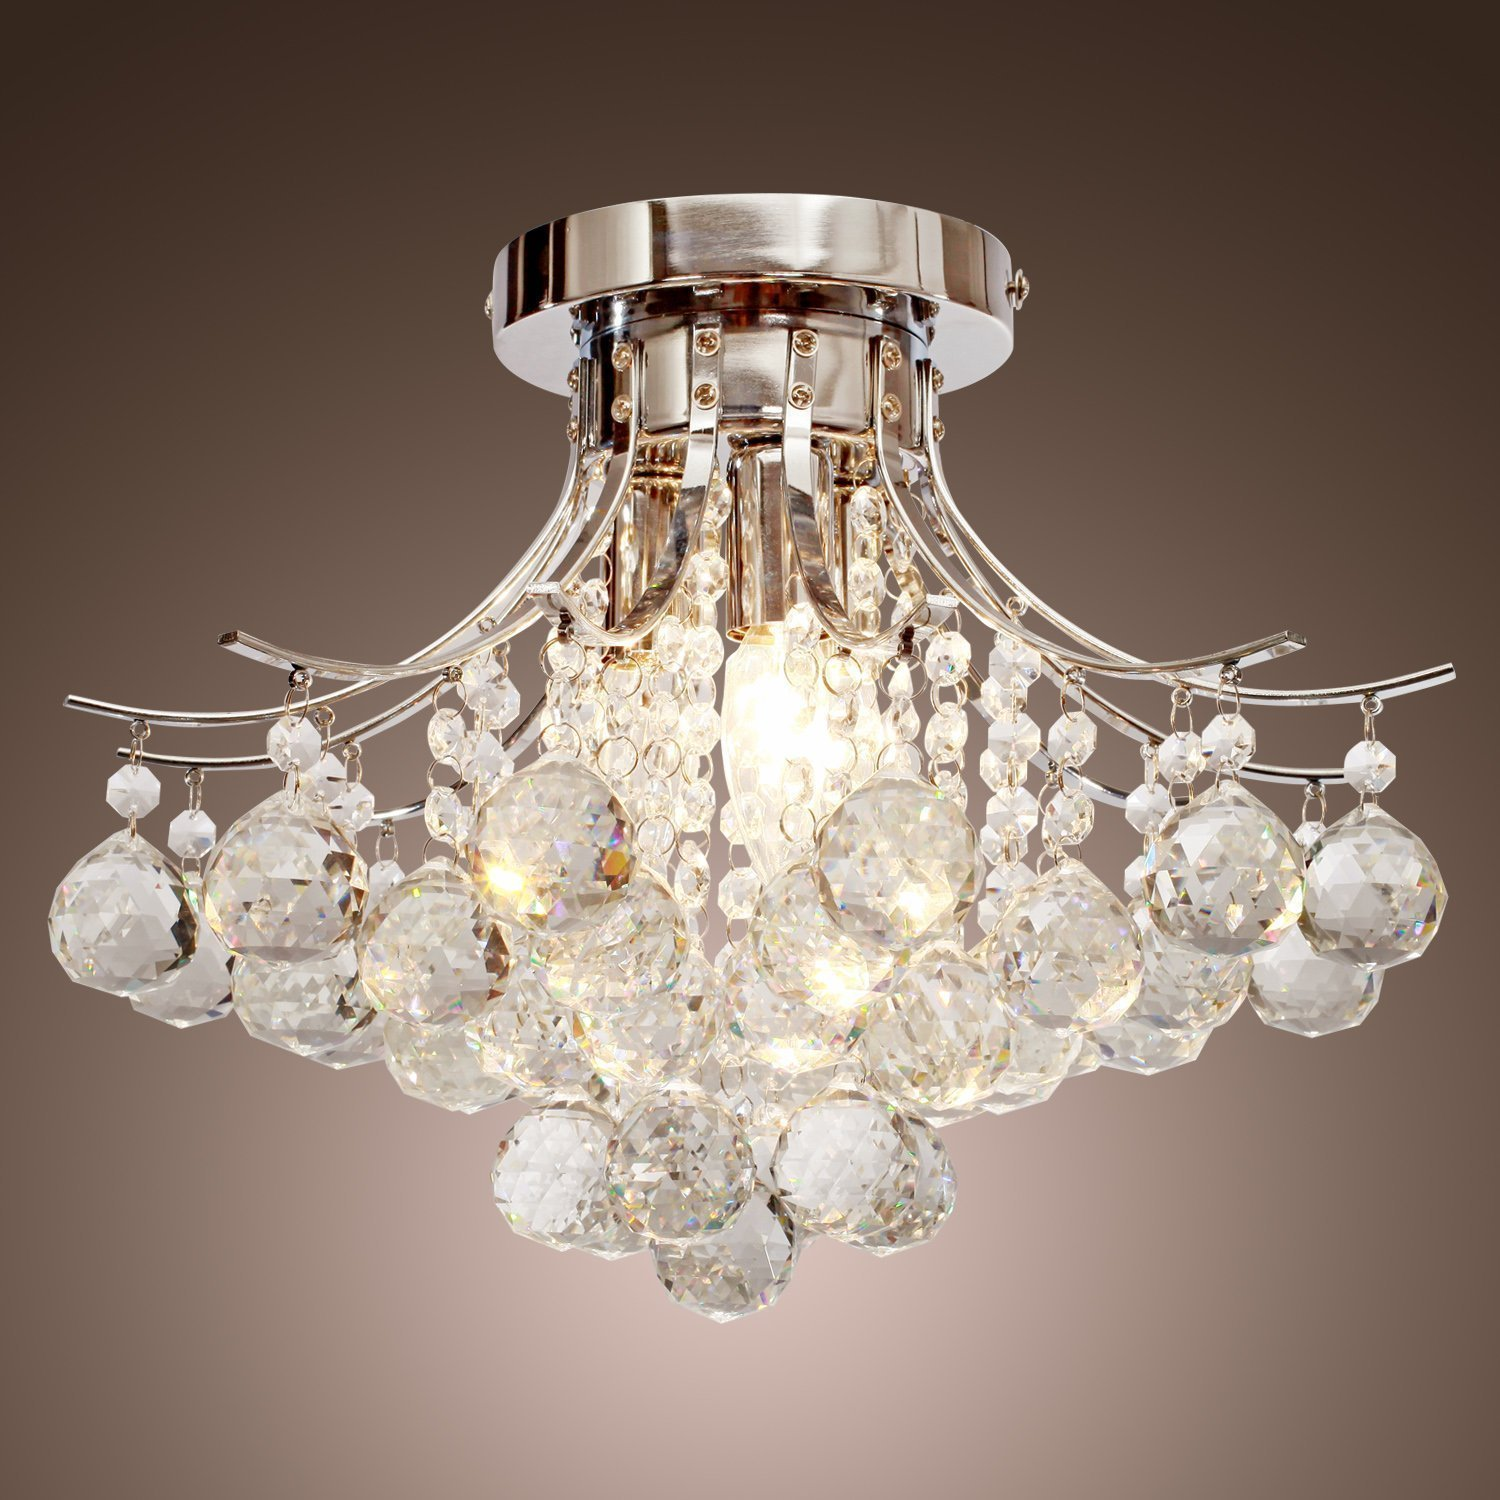 Chandelier Table Lamp at Home and Interior Design Ideas